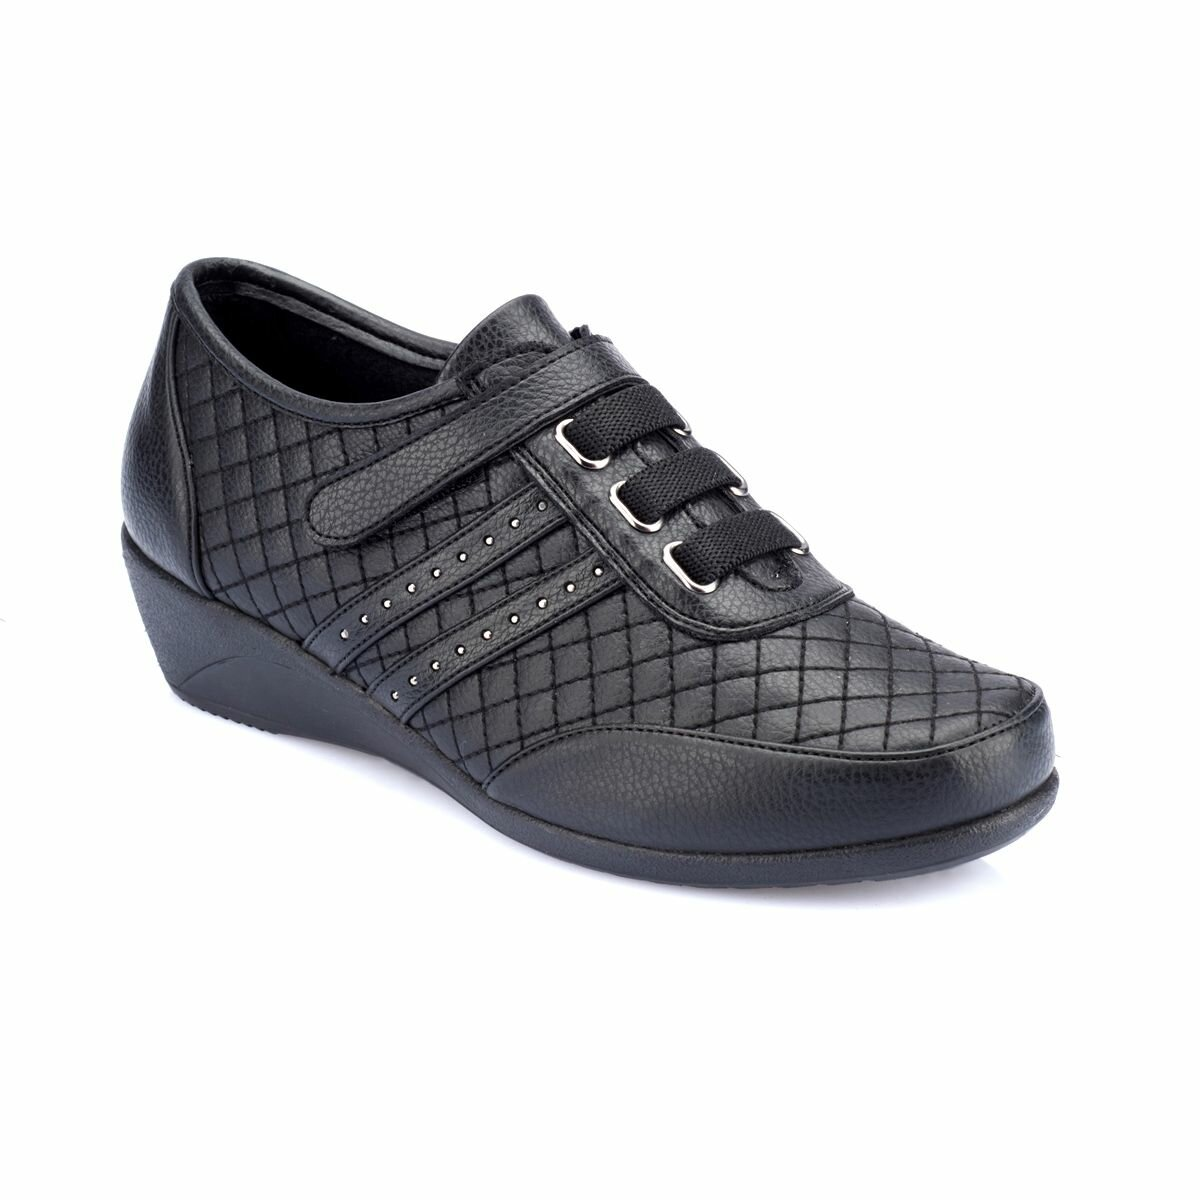 FLO 82. 156086.Z Black Women Shoes Polaris